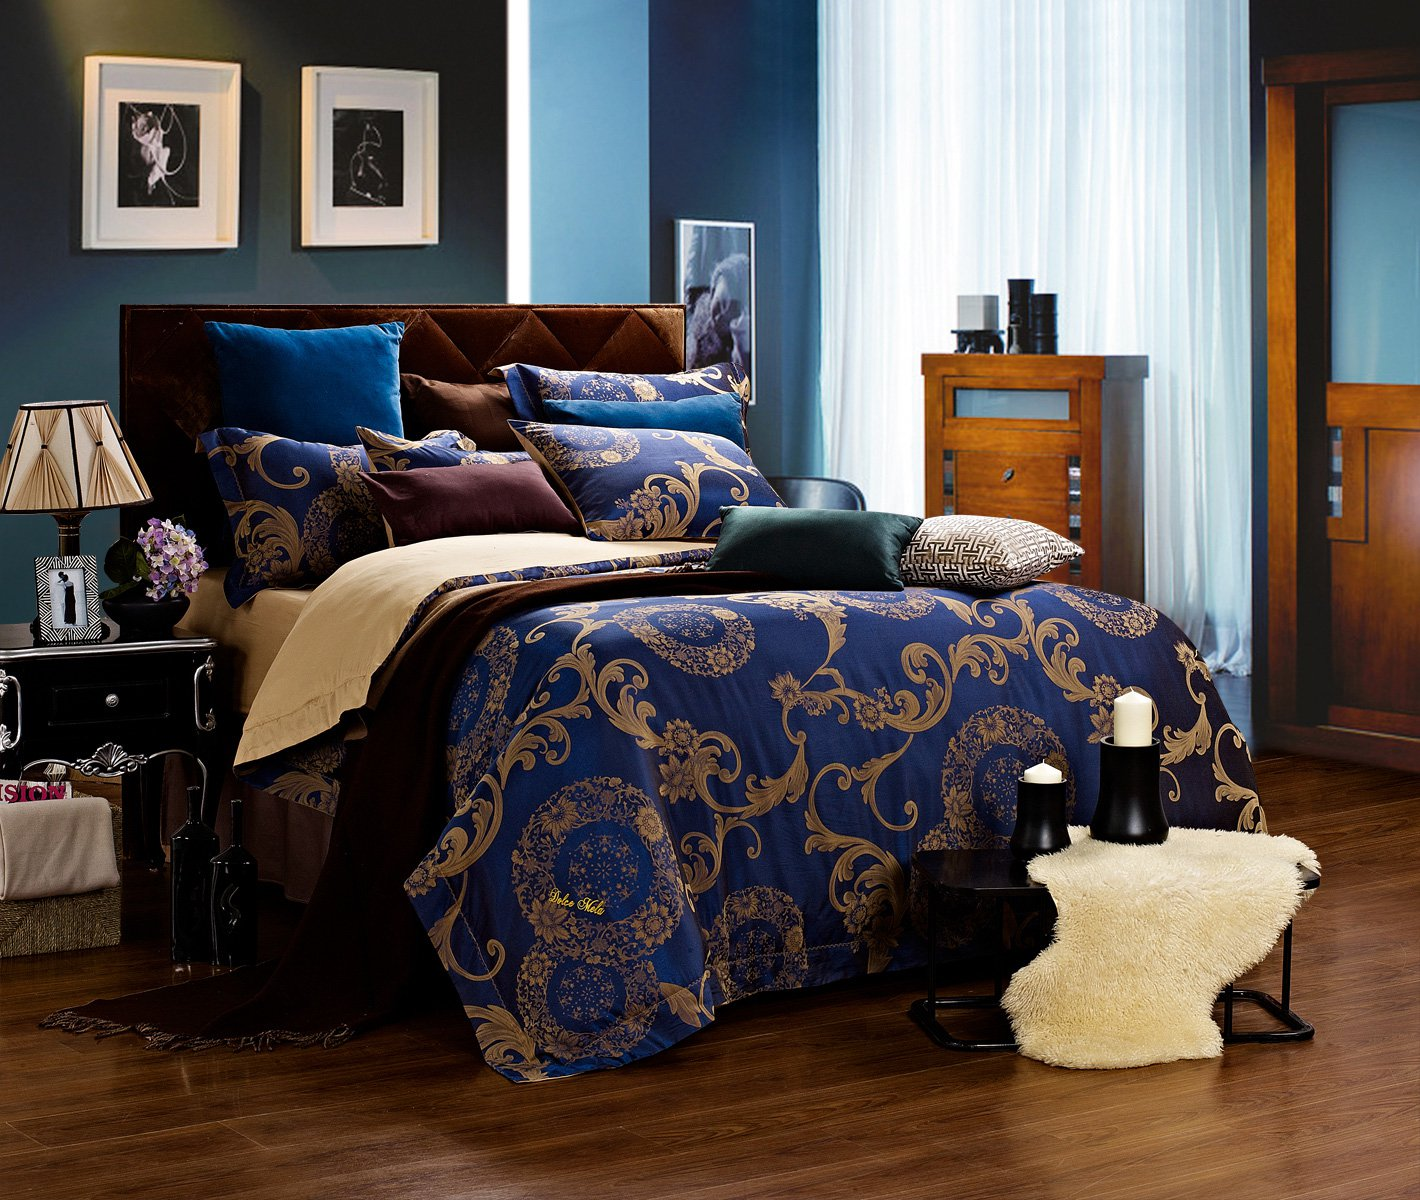 Must See Stunning 6 Pc Solid Mahogany Antique Drexel: Venus By Dolce Mela, 6-PC Queen Size Duvet Cover Set